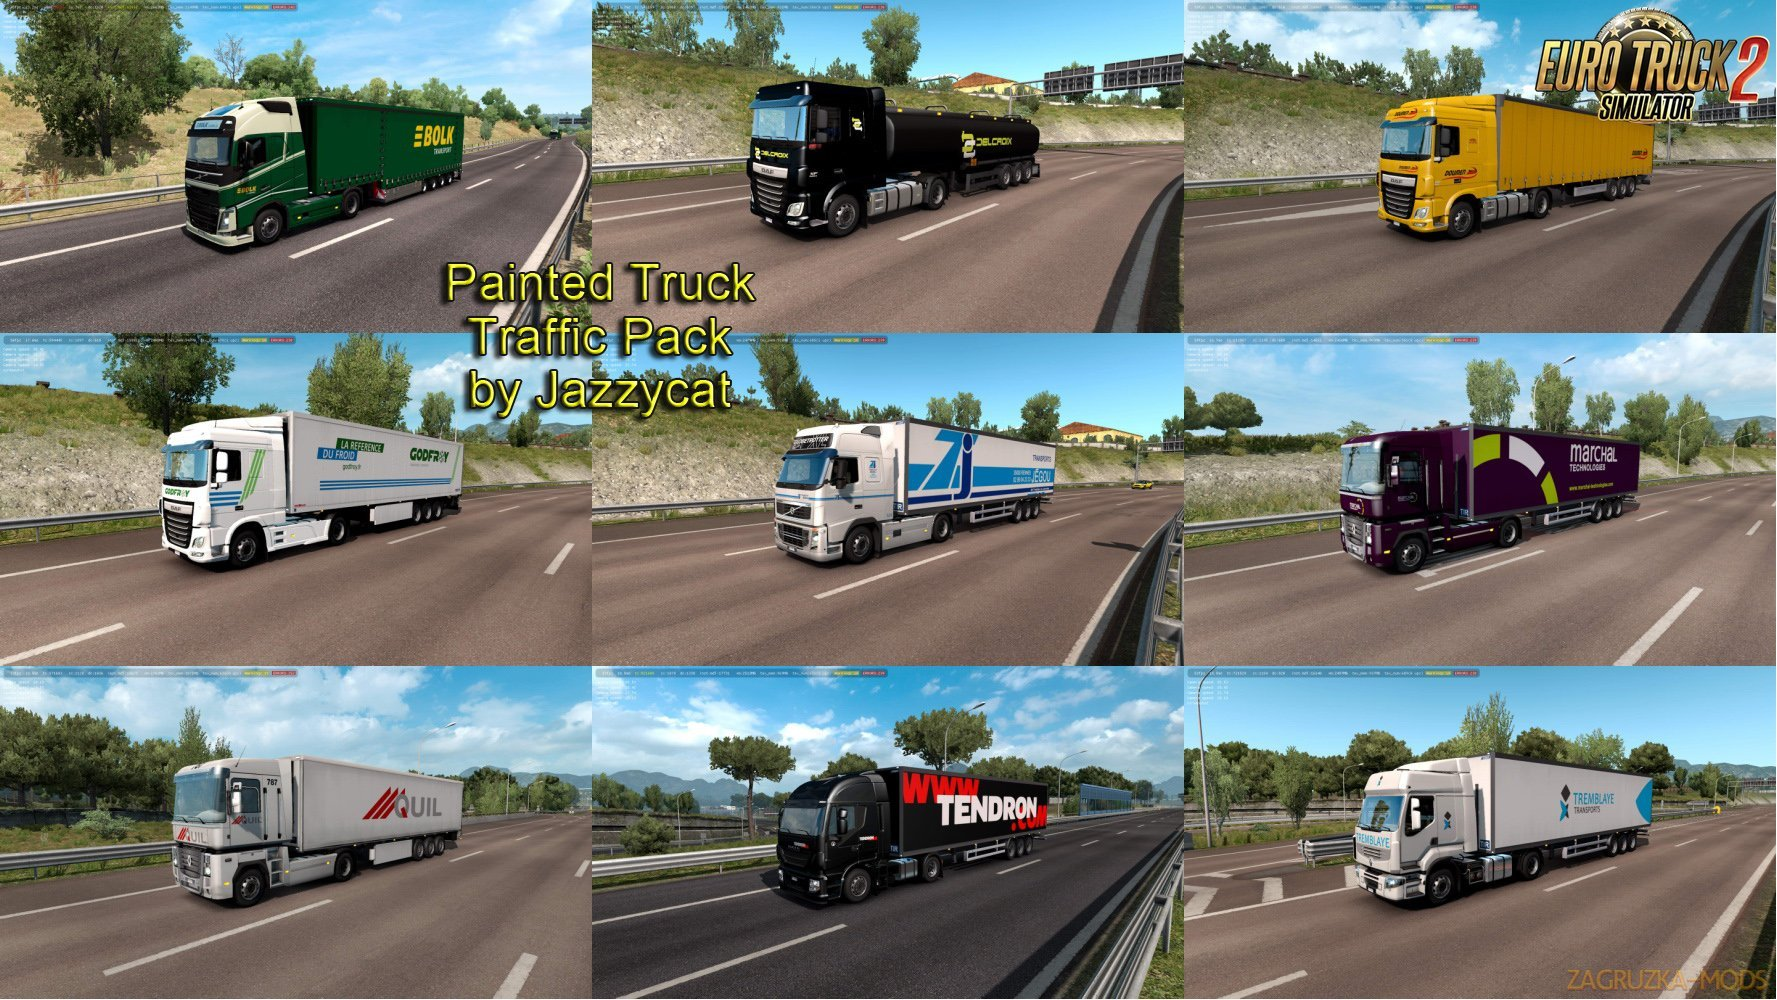 Painted Truck Traffic Pack v6.6 by Jazzycat